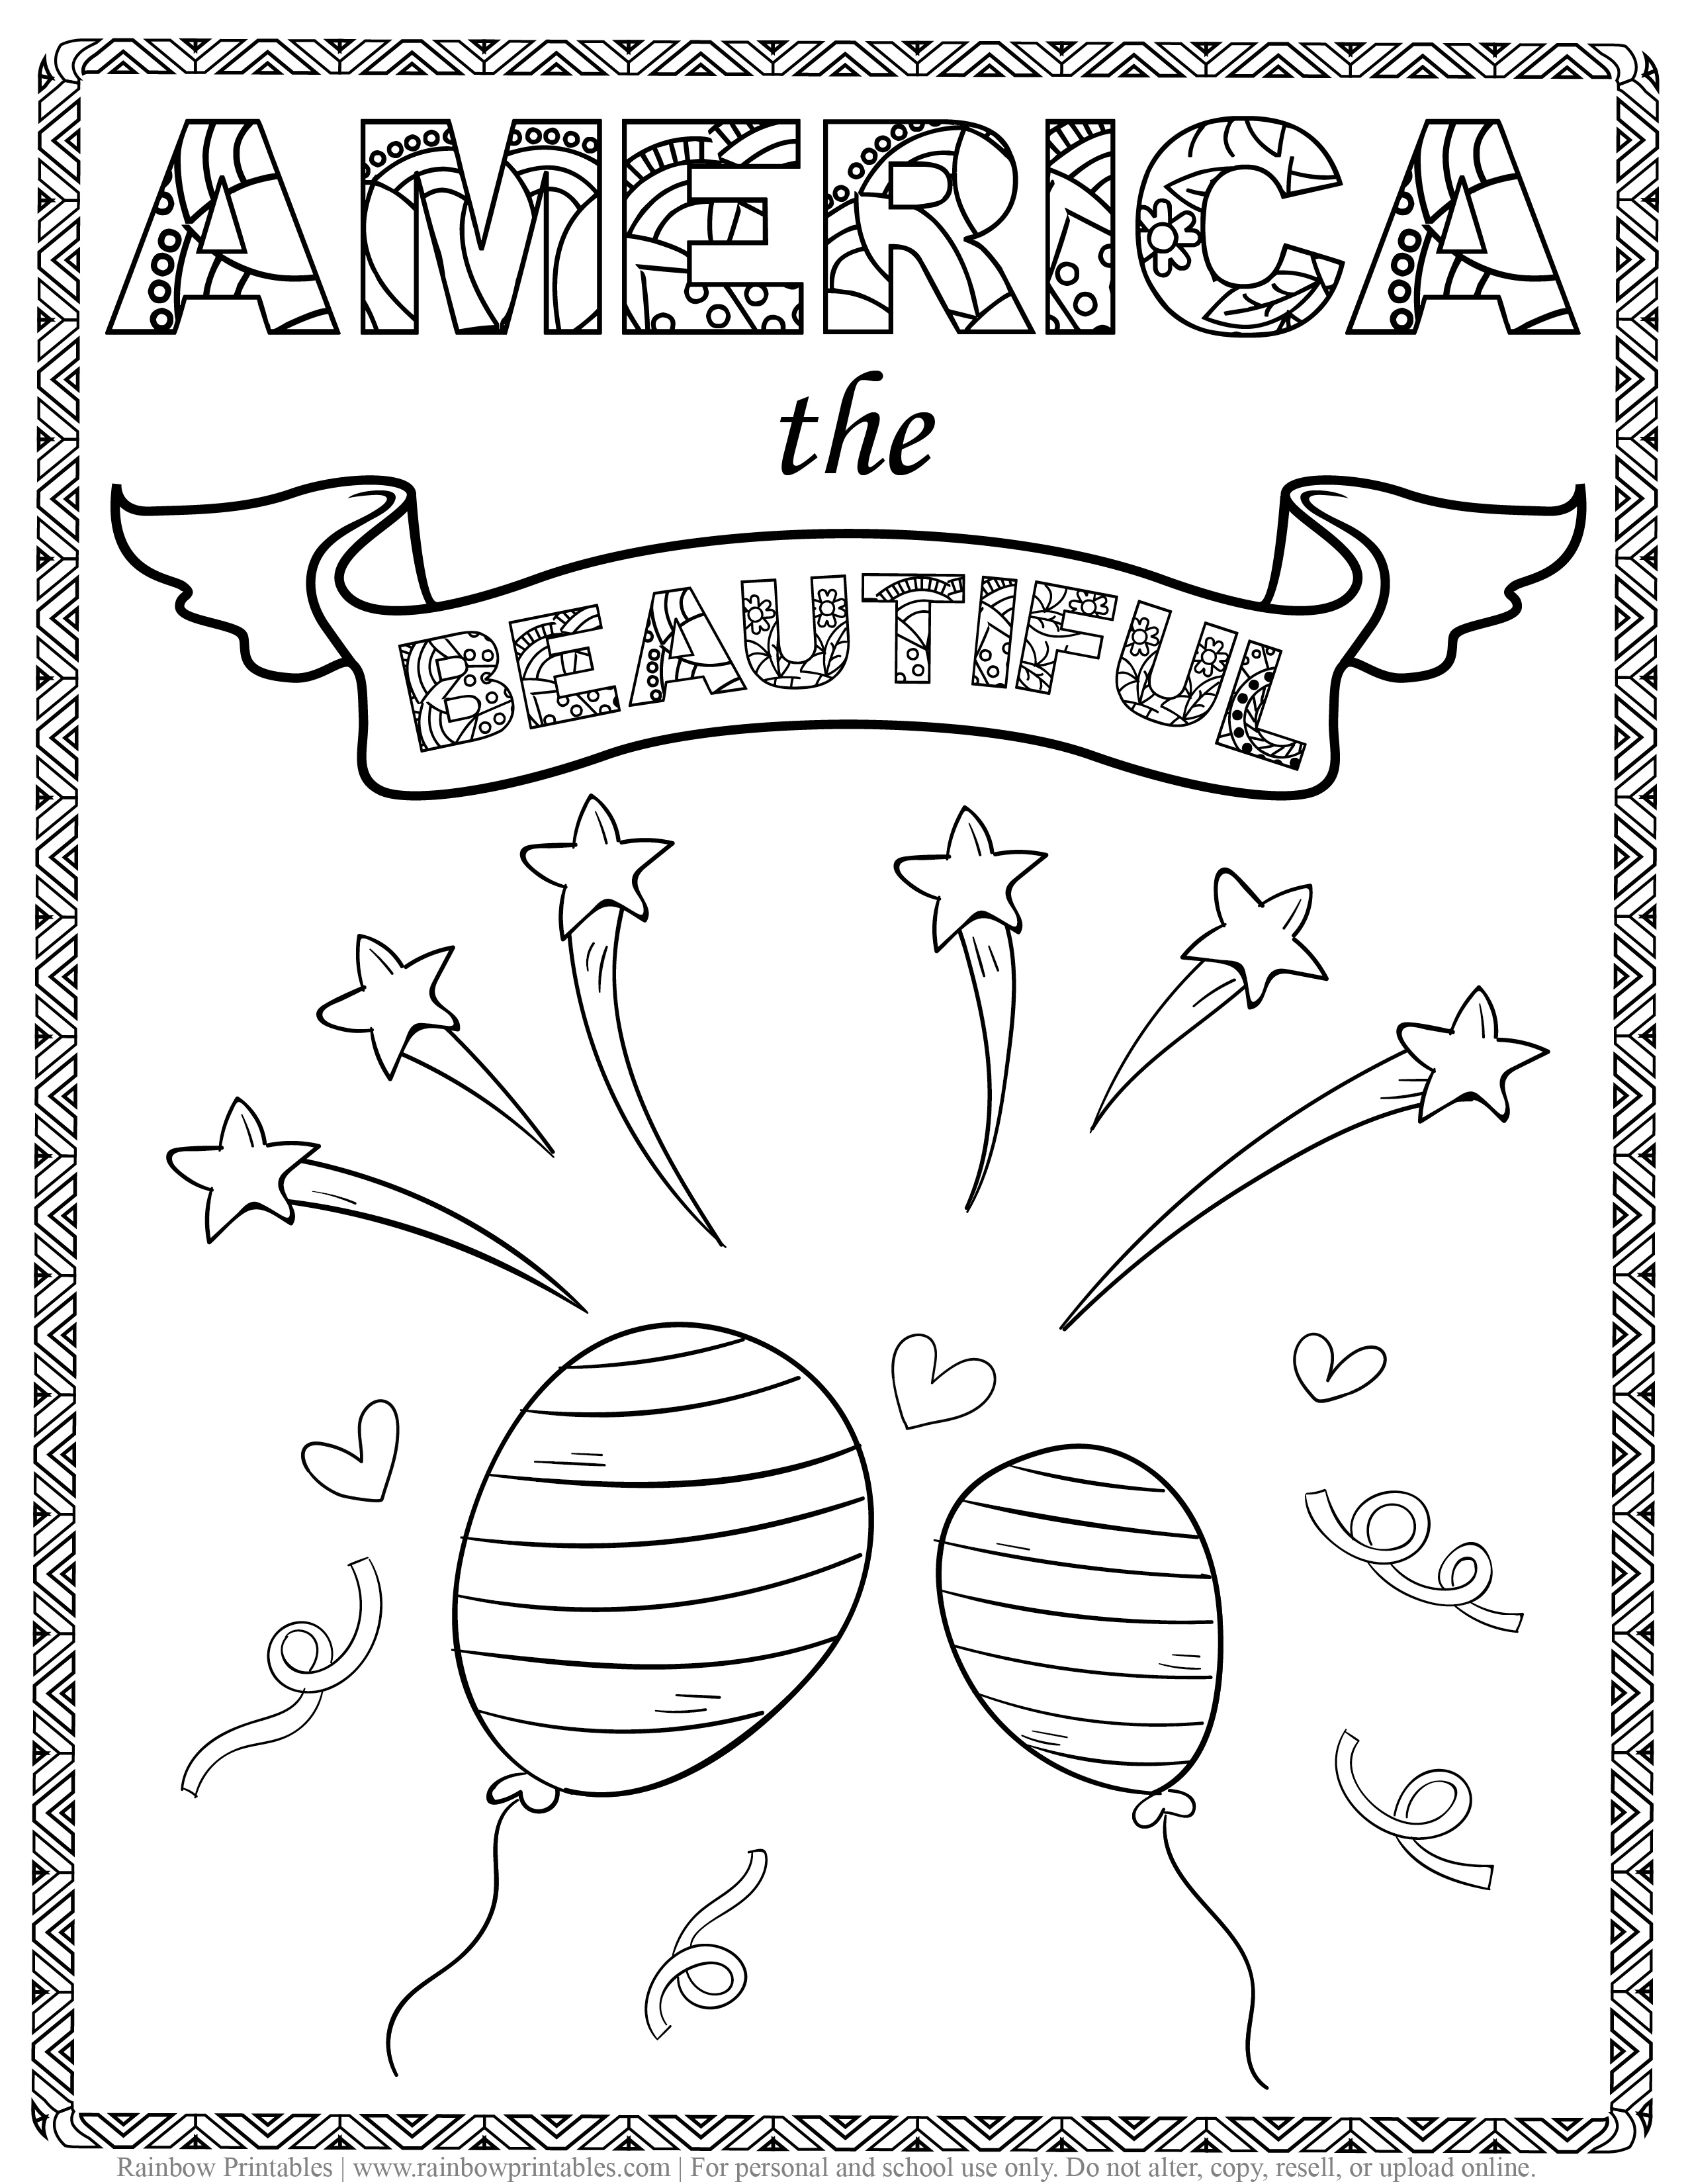 America The Beautiful Coloring Page, Kids Patriotic July 4th Independence Day Printables for Children, Toddlers, Activity for Preschool, Celebrating